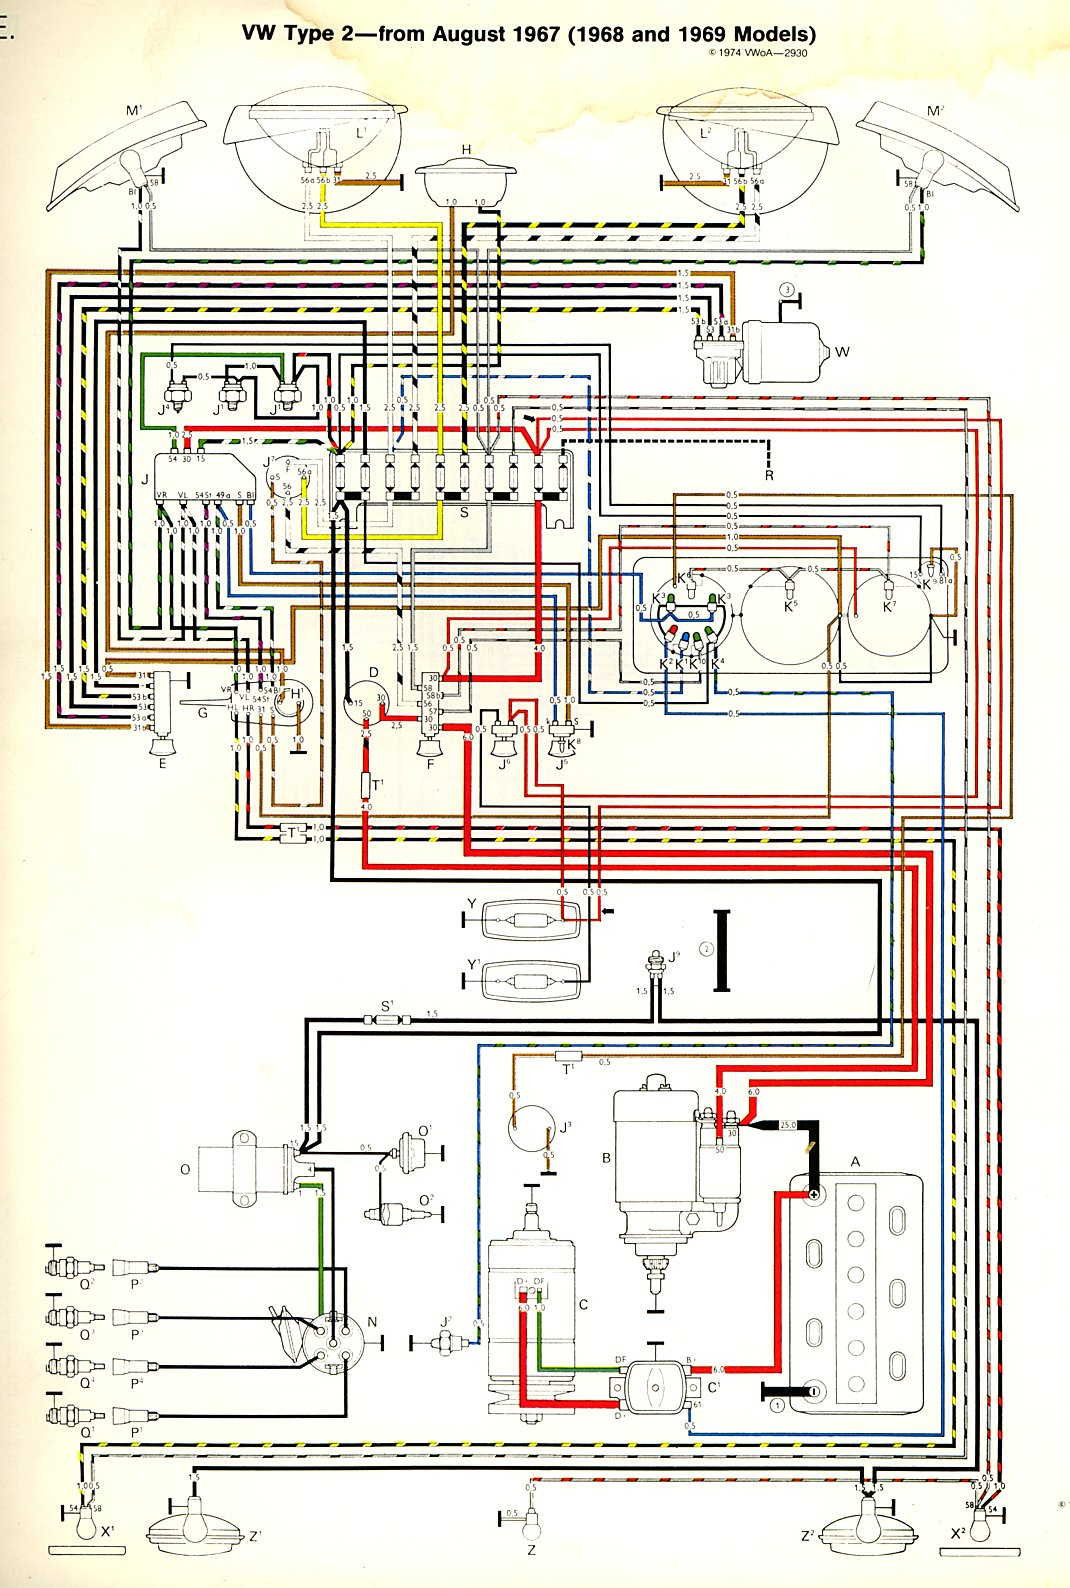 baybus_6869a 1968 vw beetle wiring diagram 1973 vw super beetle wiring diagram 1973 super beetle wiring harness at panicattacktreatment.co